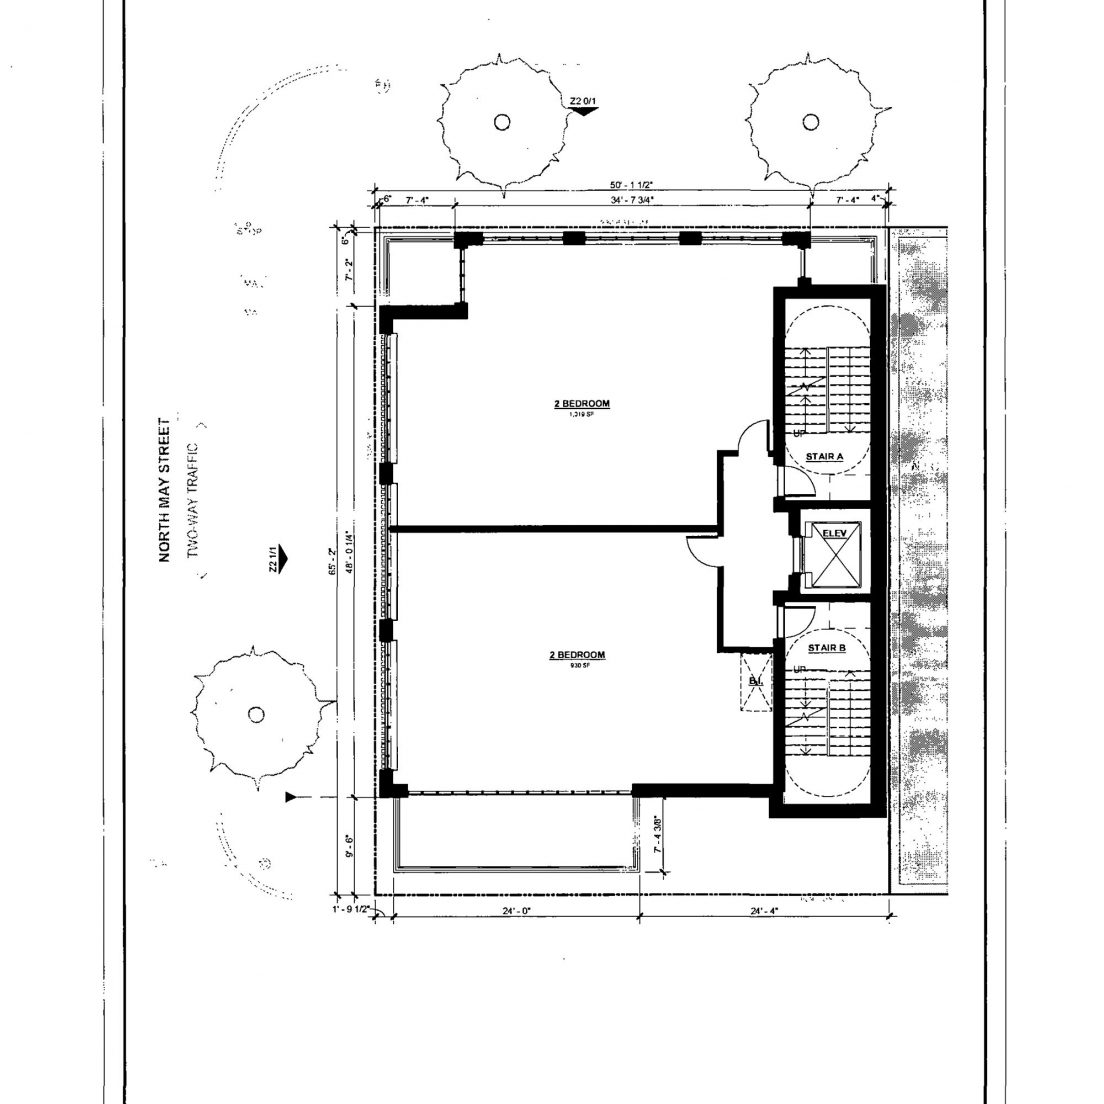 Diagram of 1123 West Randolph